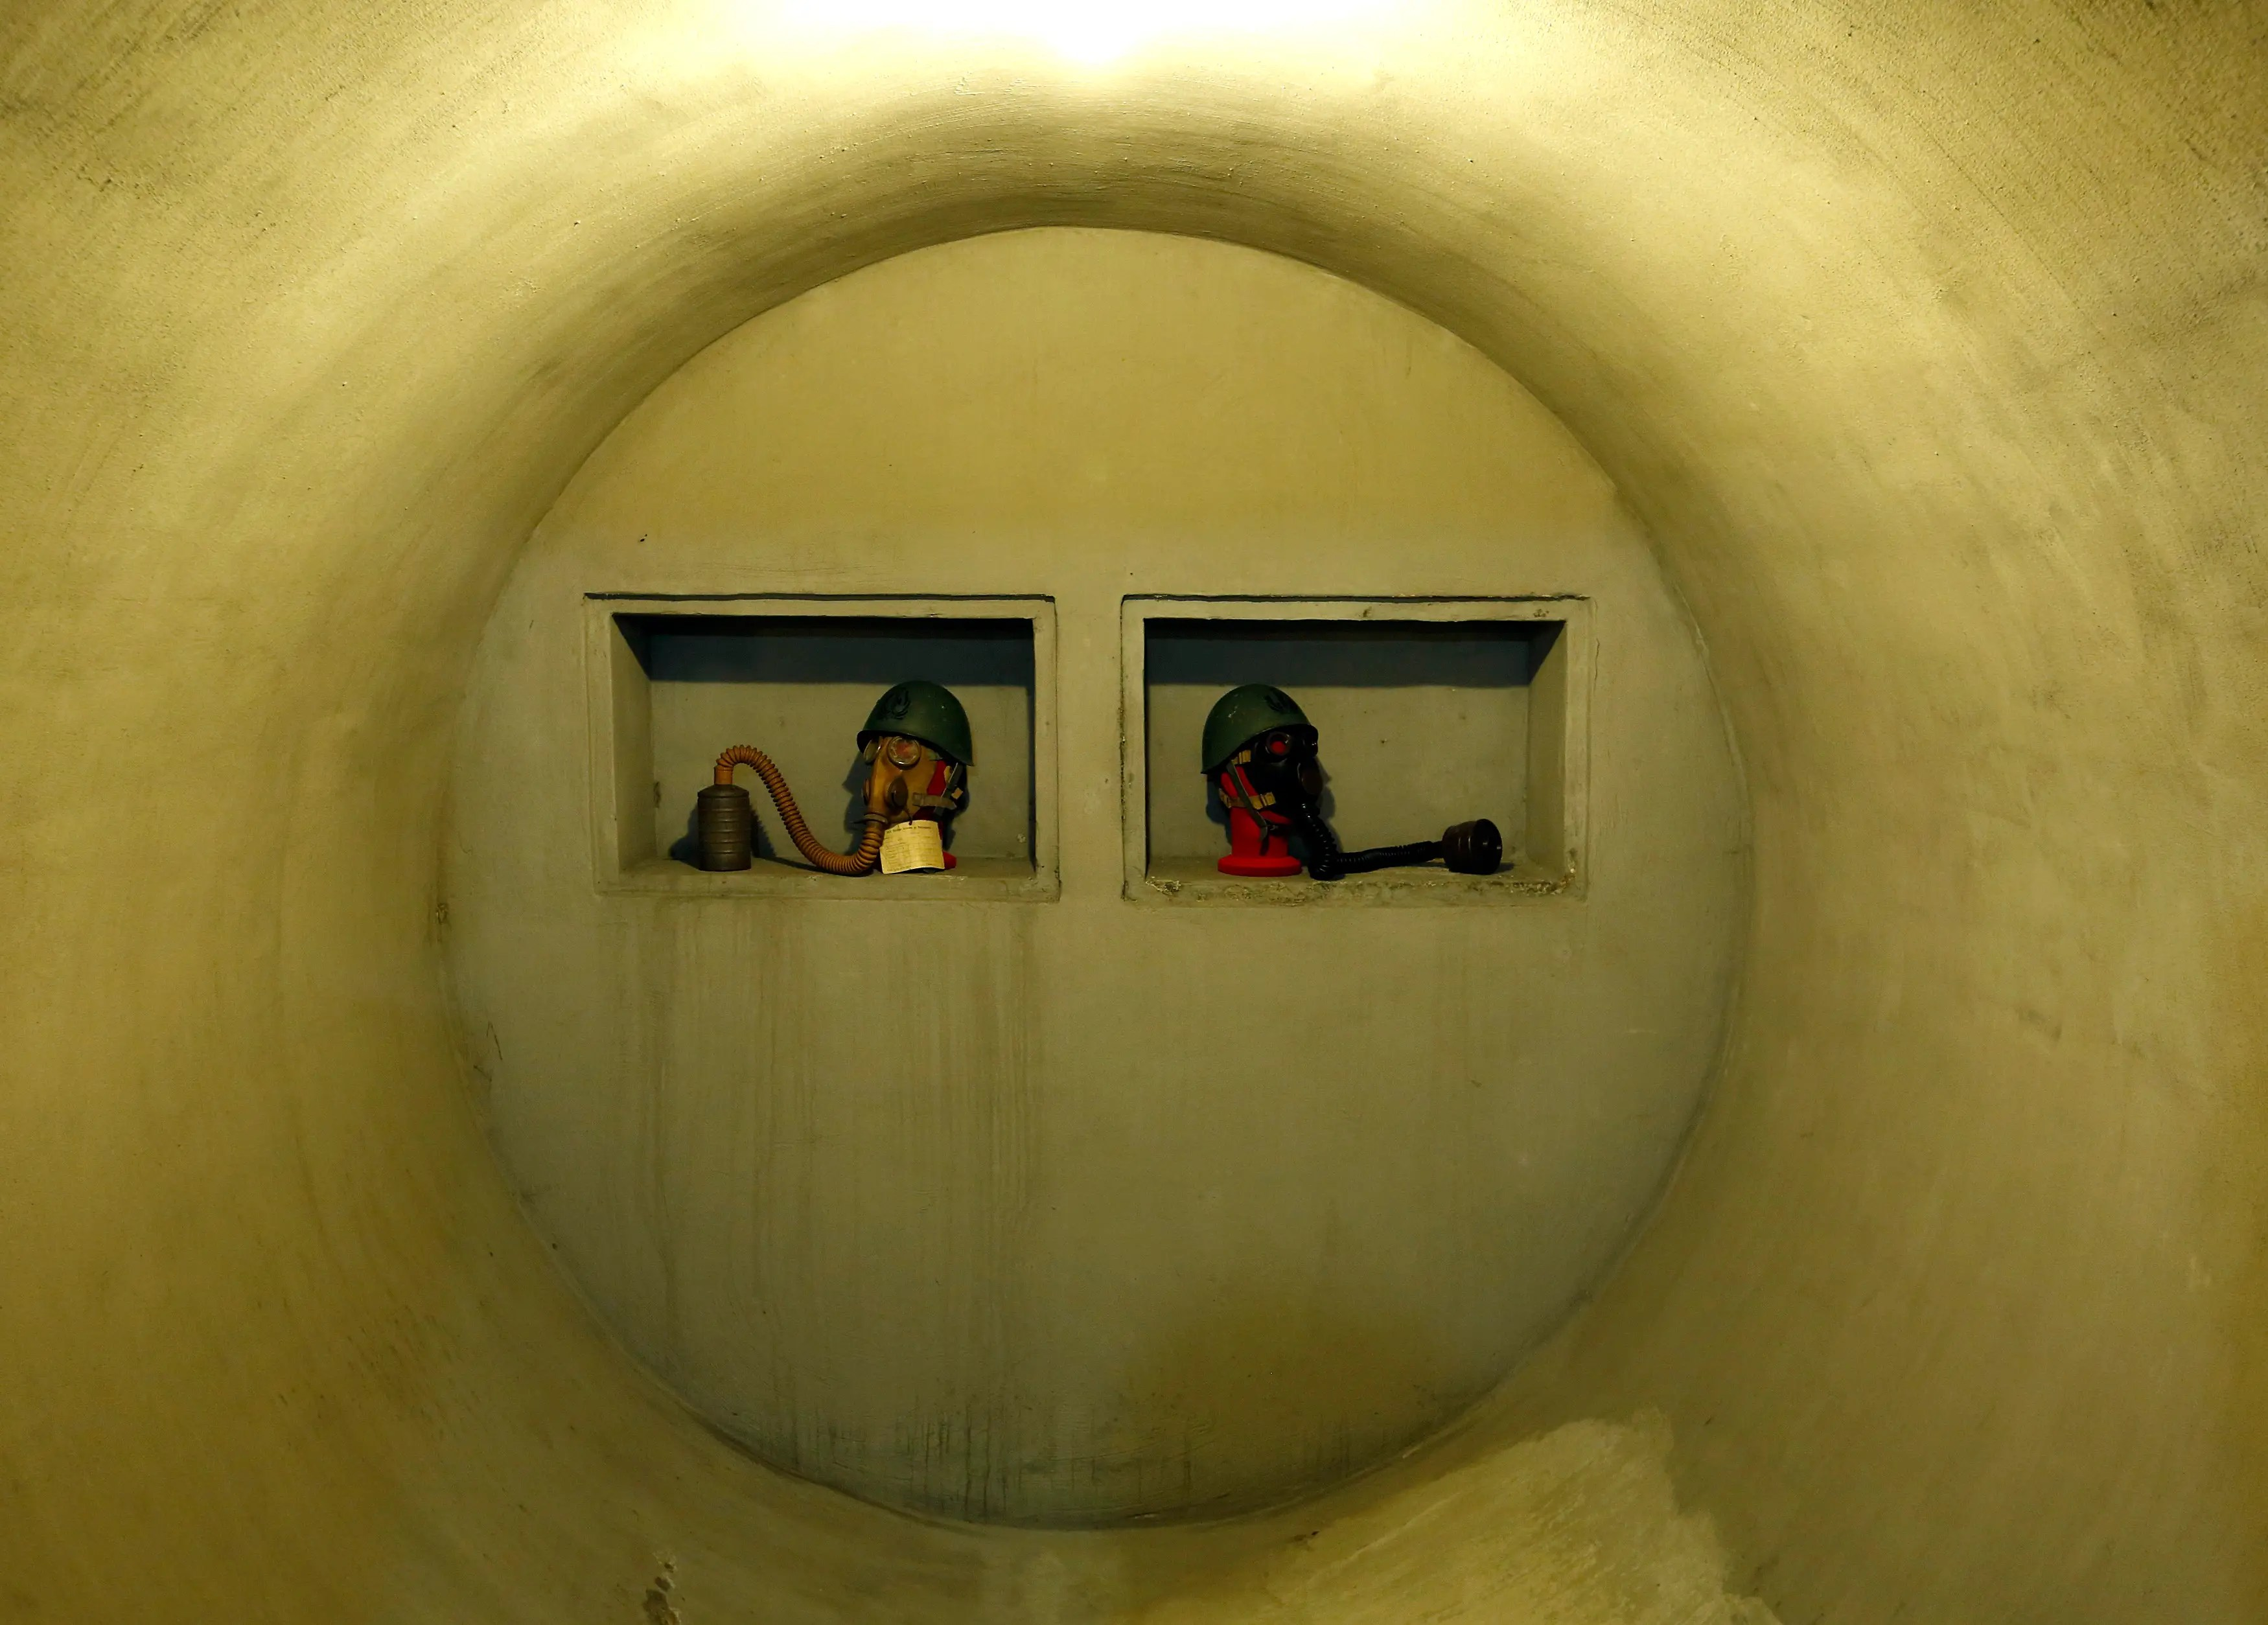 The bunker was transformed from a wine cellar. Corriere della Sera wrote that Mussolini complained that the bunker was not ready by the time his regime fell.